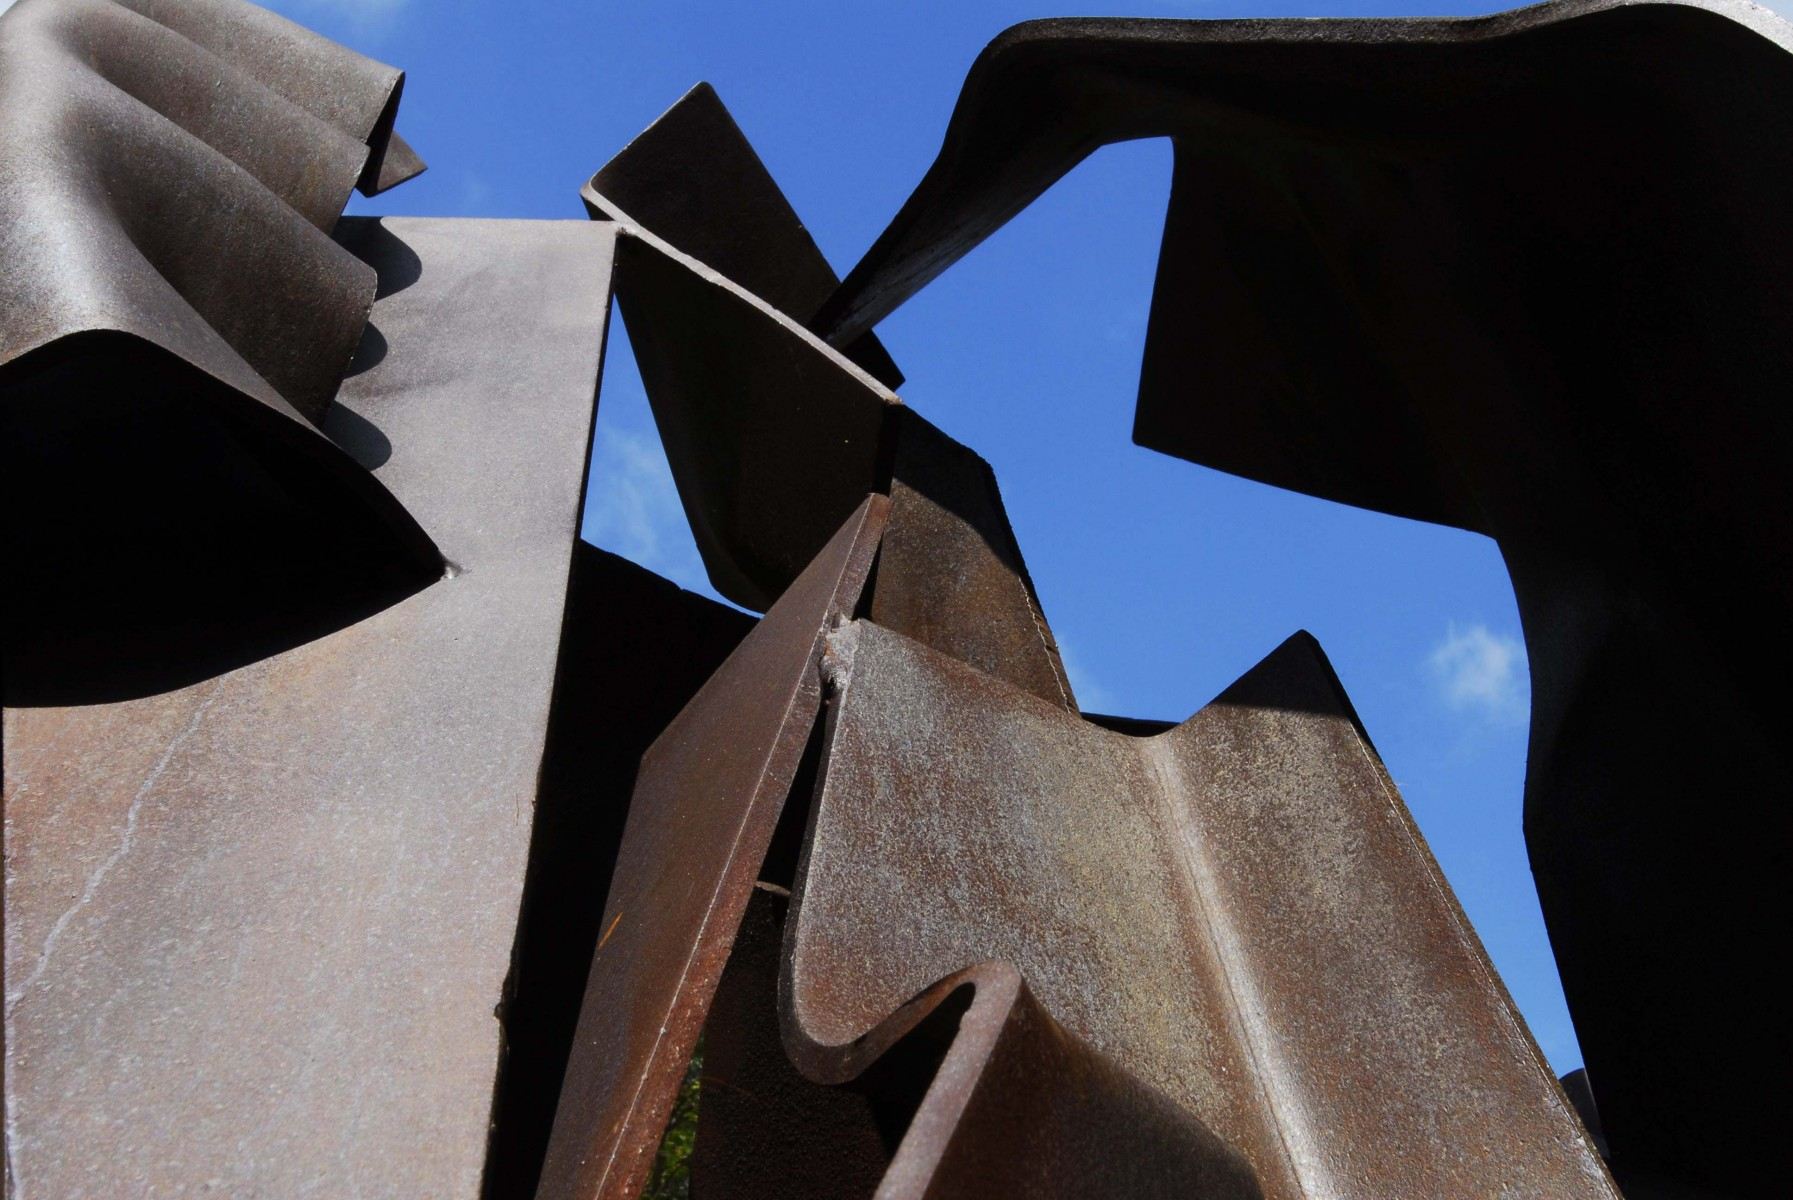 Close up of sculpture with blue sky showing through spaces